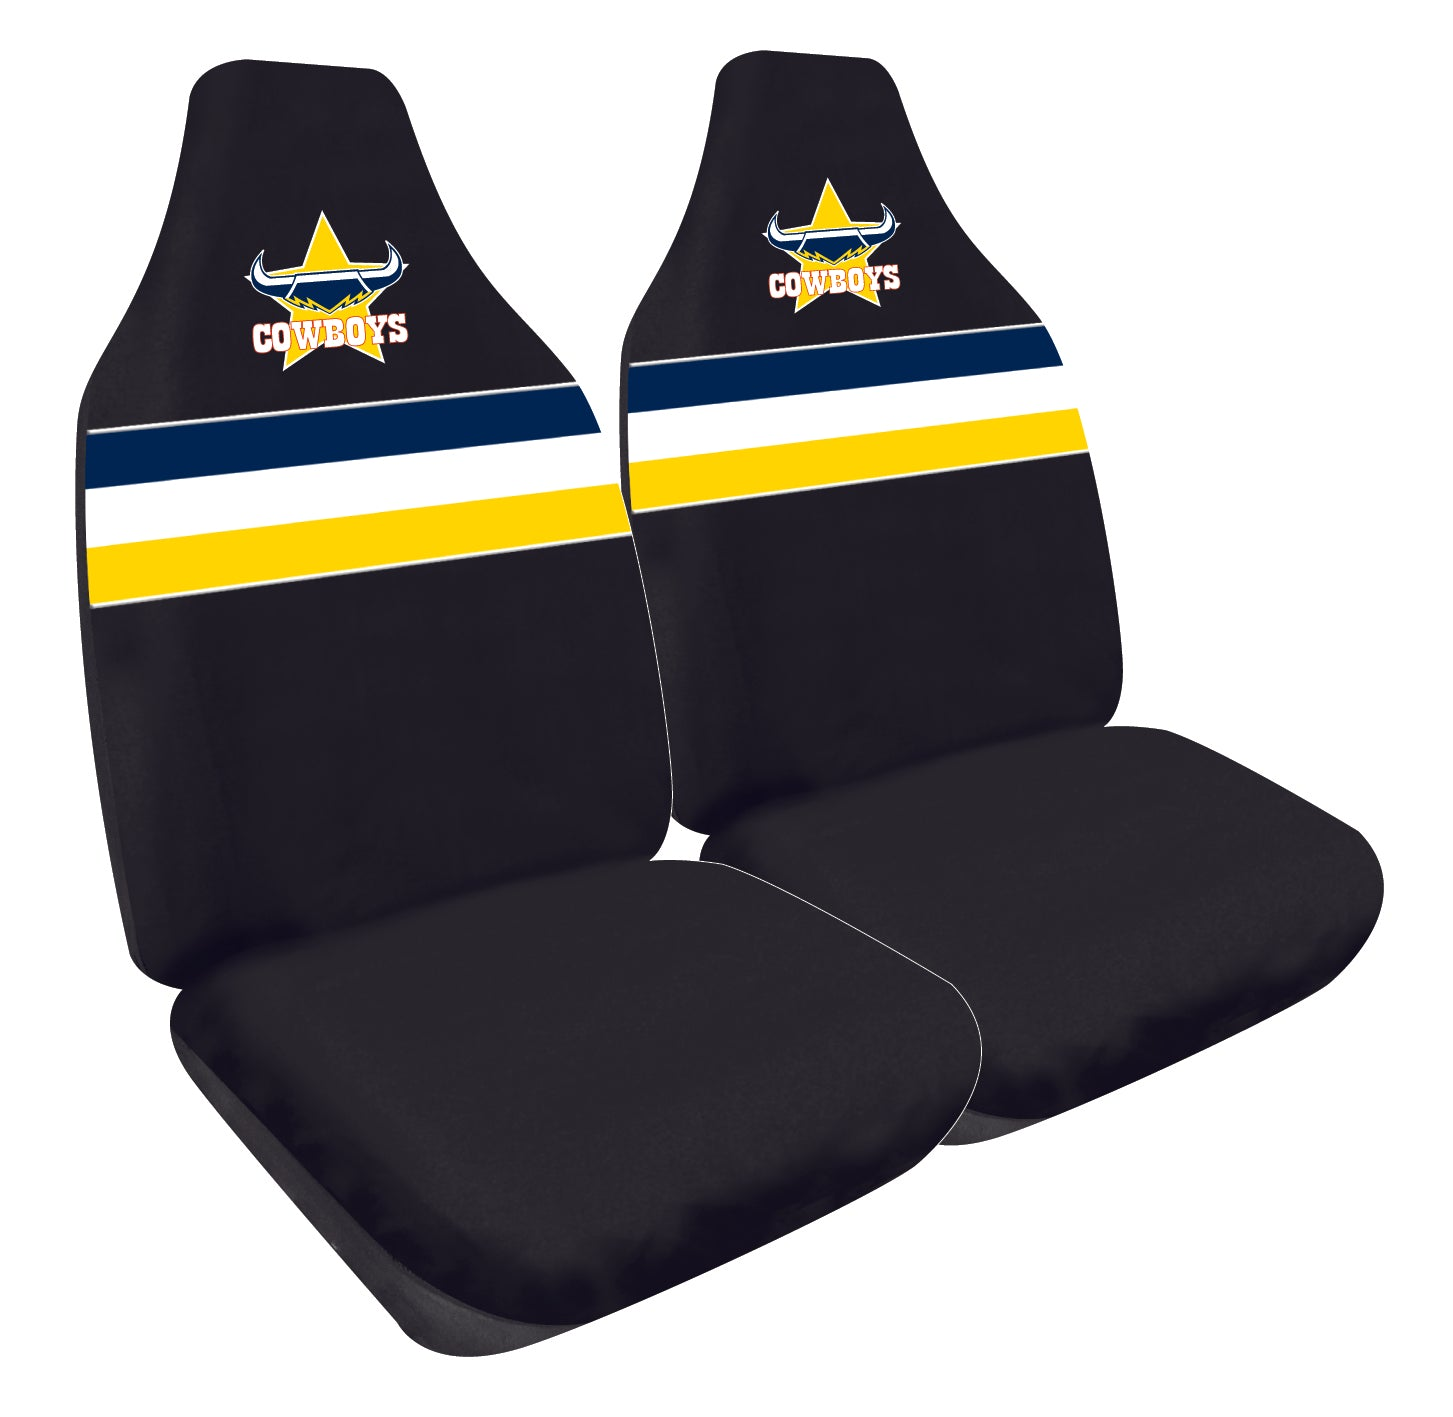 North Queensland Cowboys Car Seat Covers